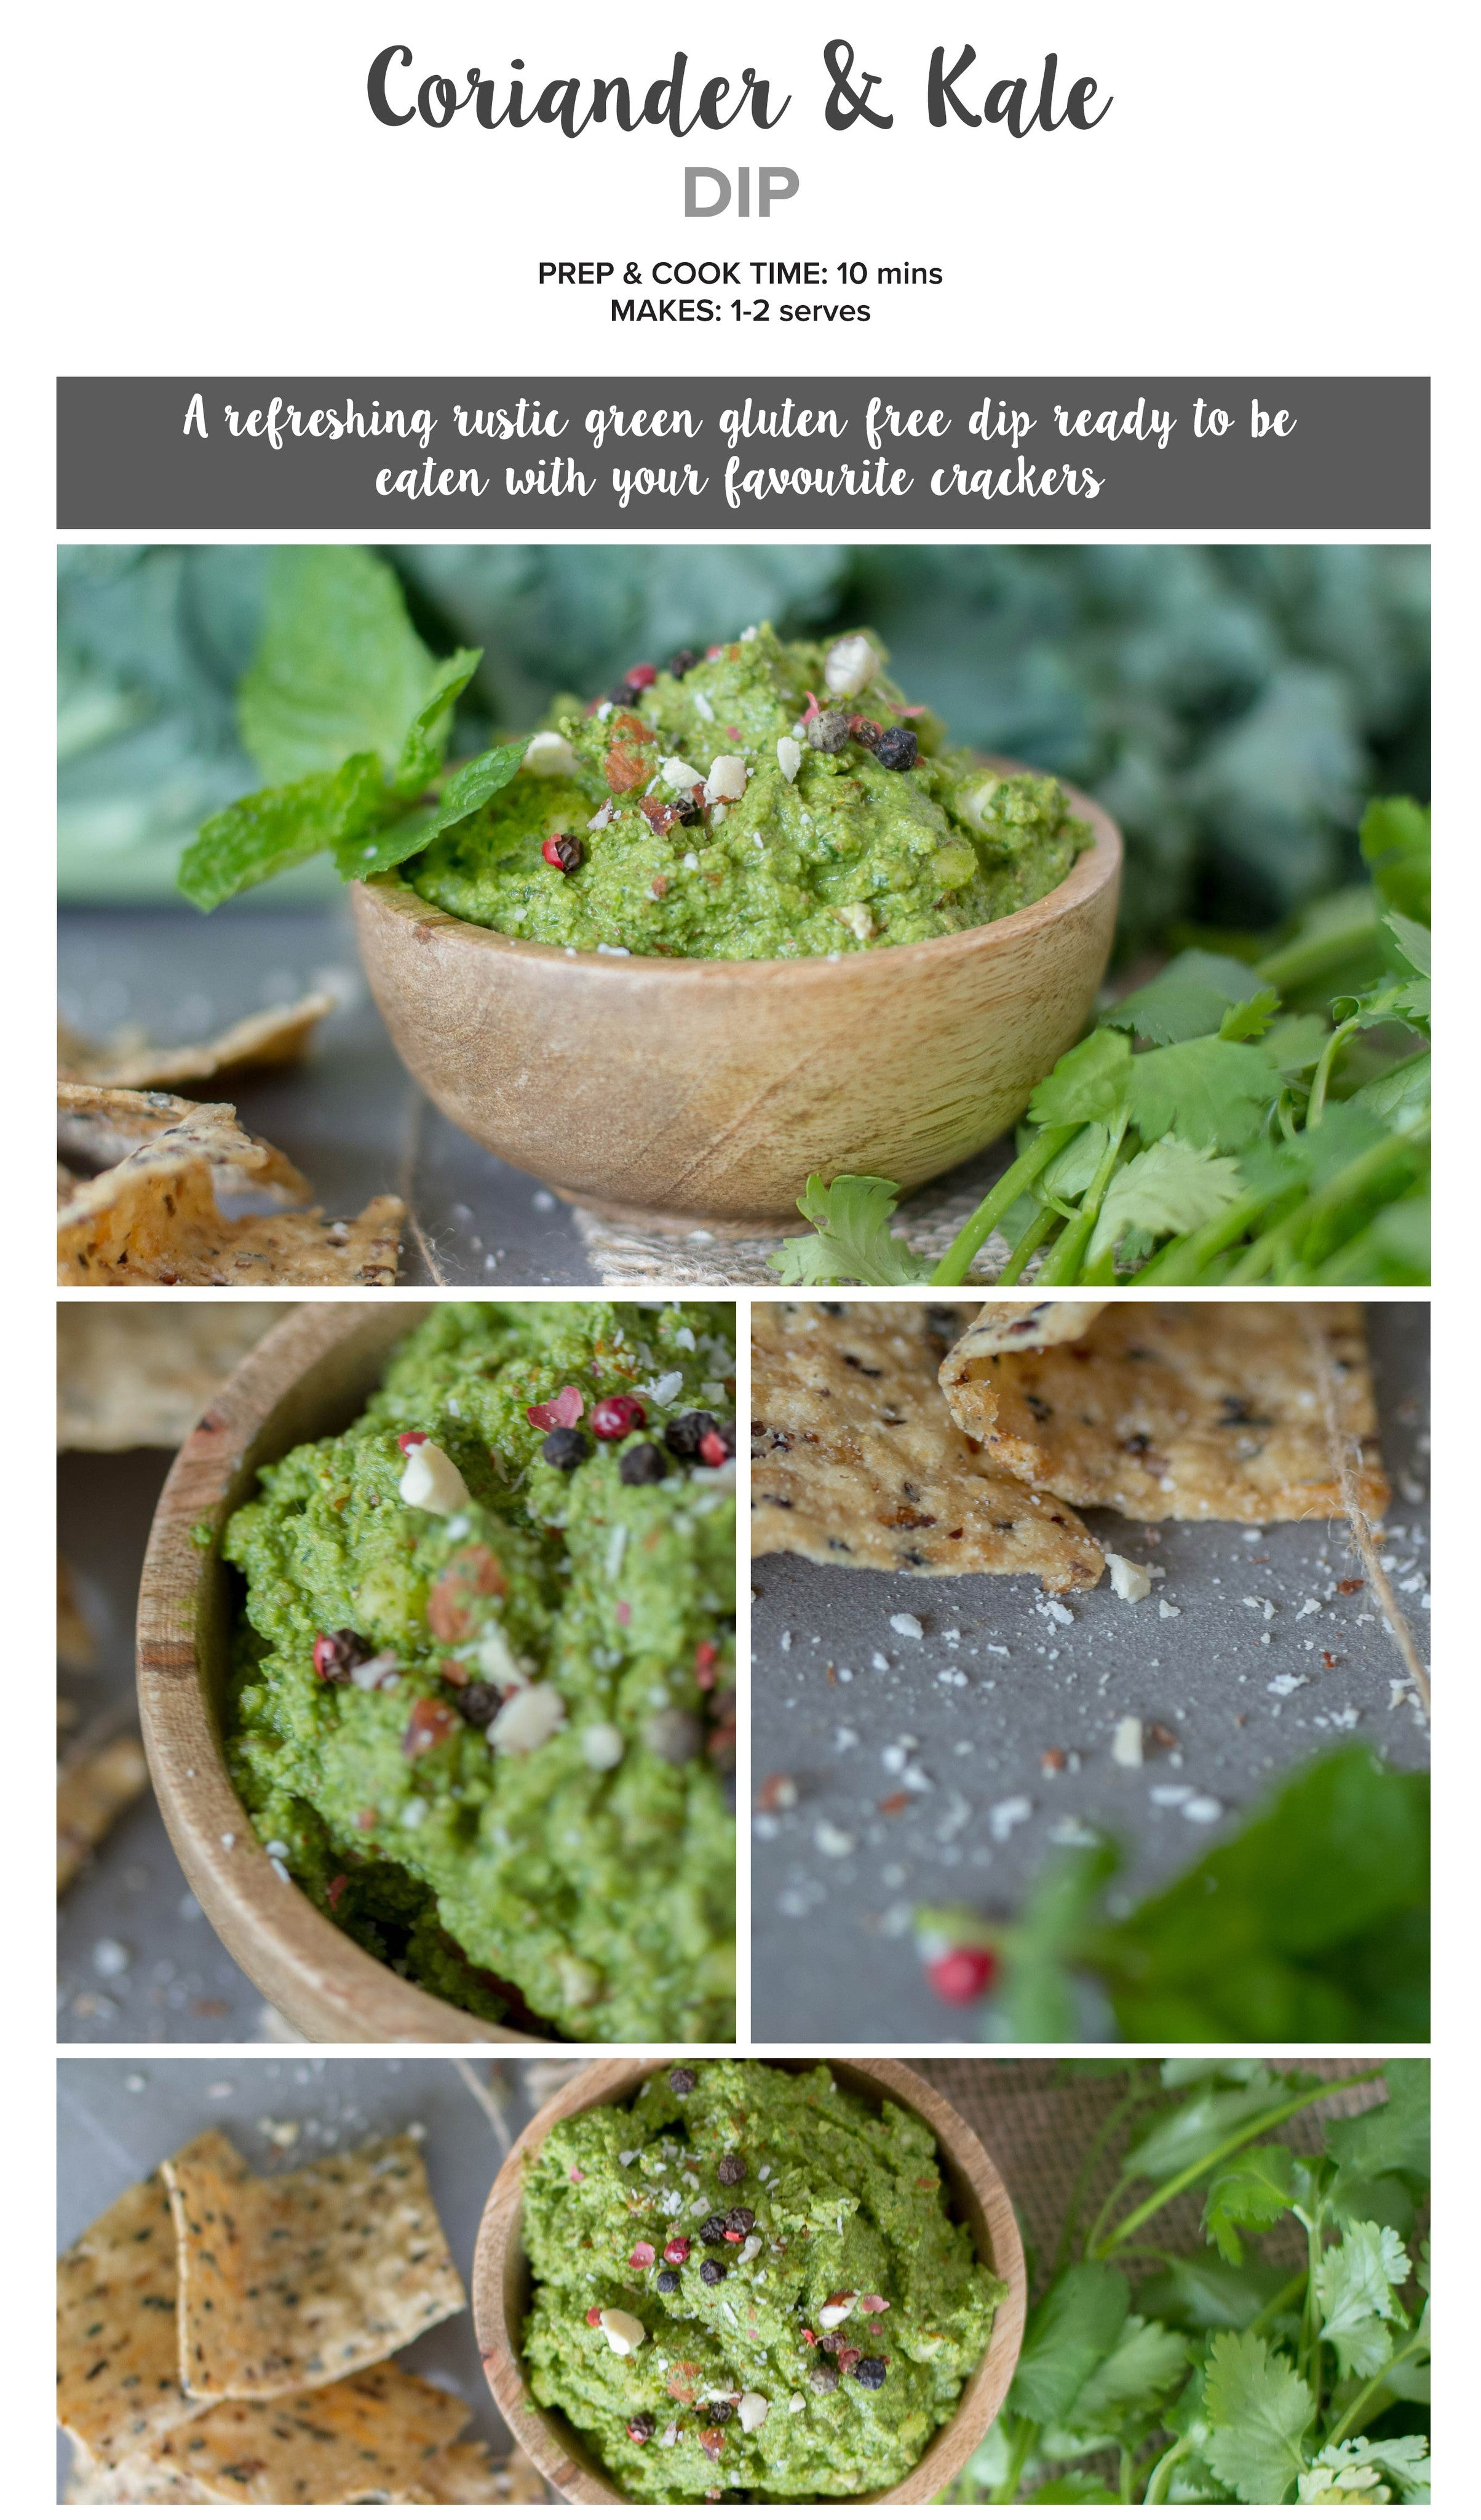 Coriander and kale dip recipe